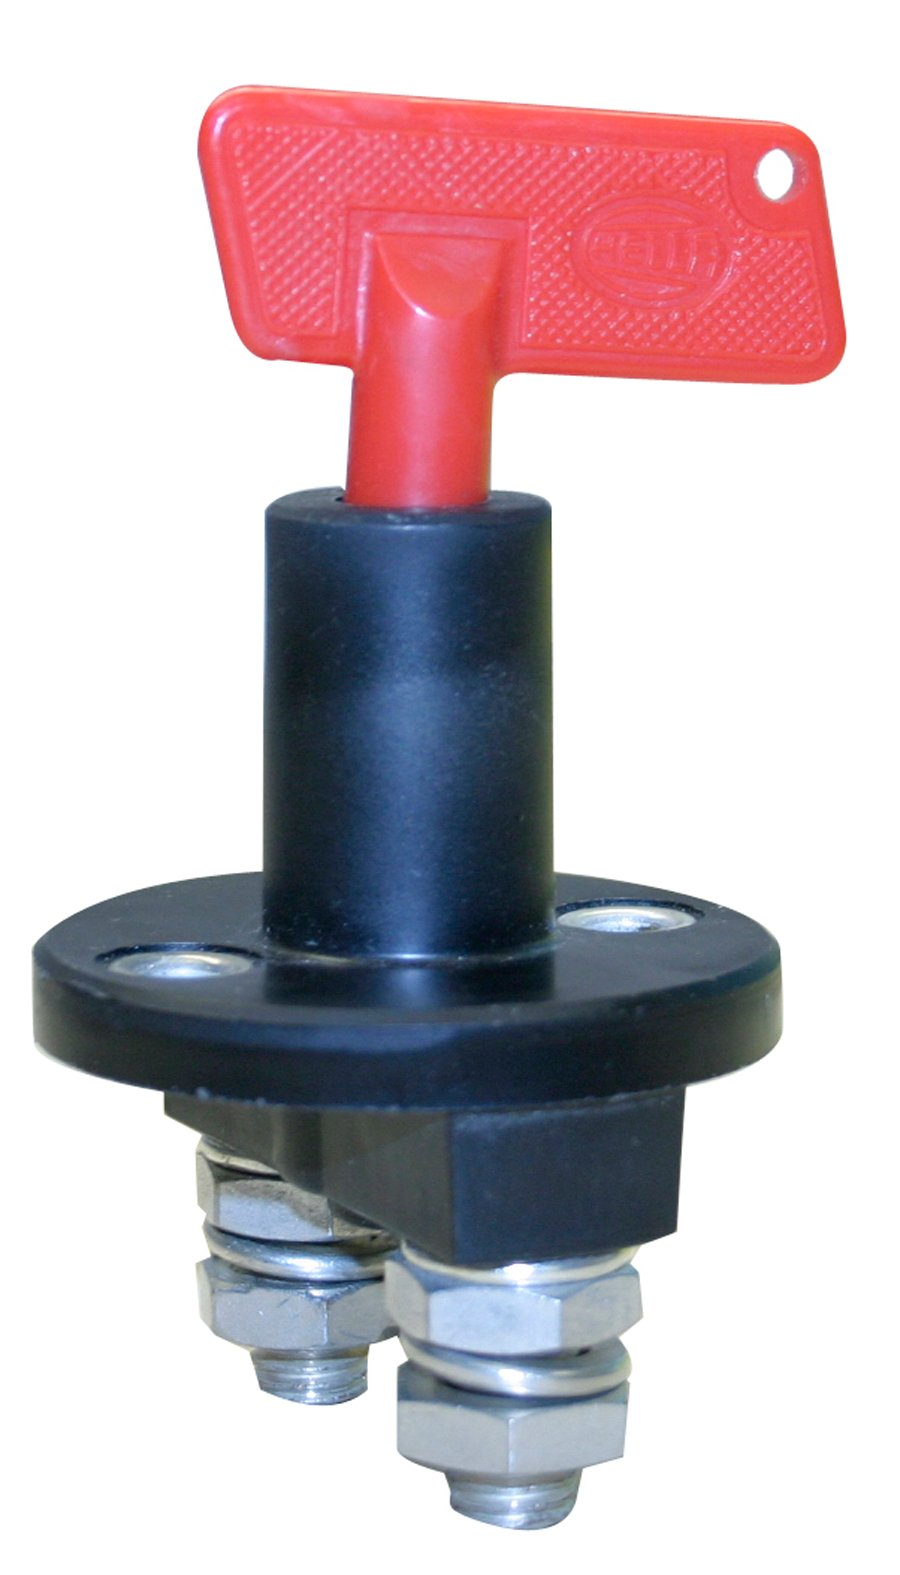 HELLA 002843011 2843 Series 100A Rating Battery Master Switch